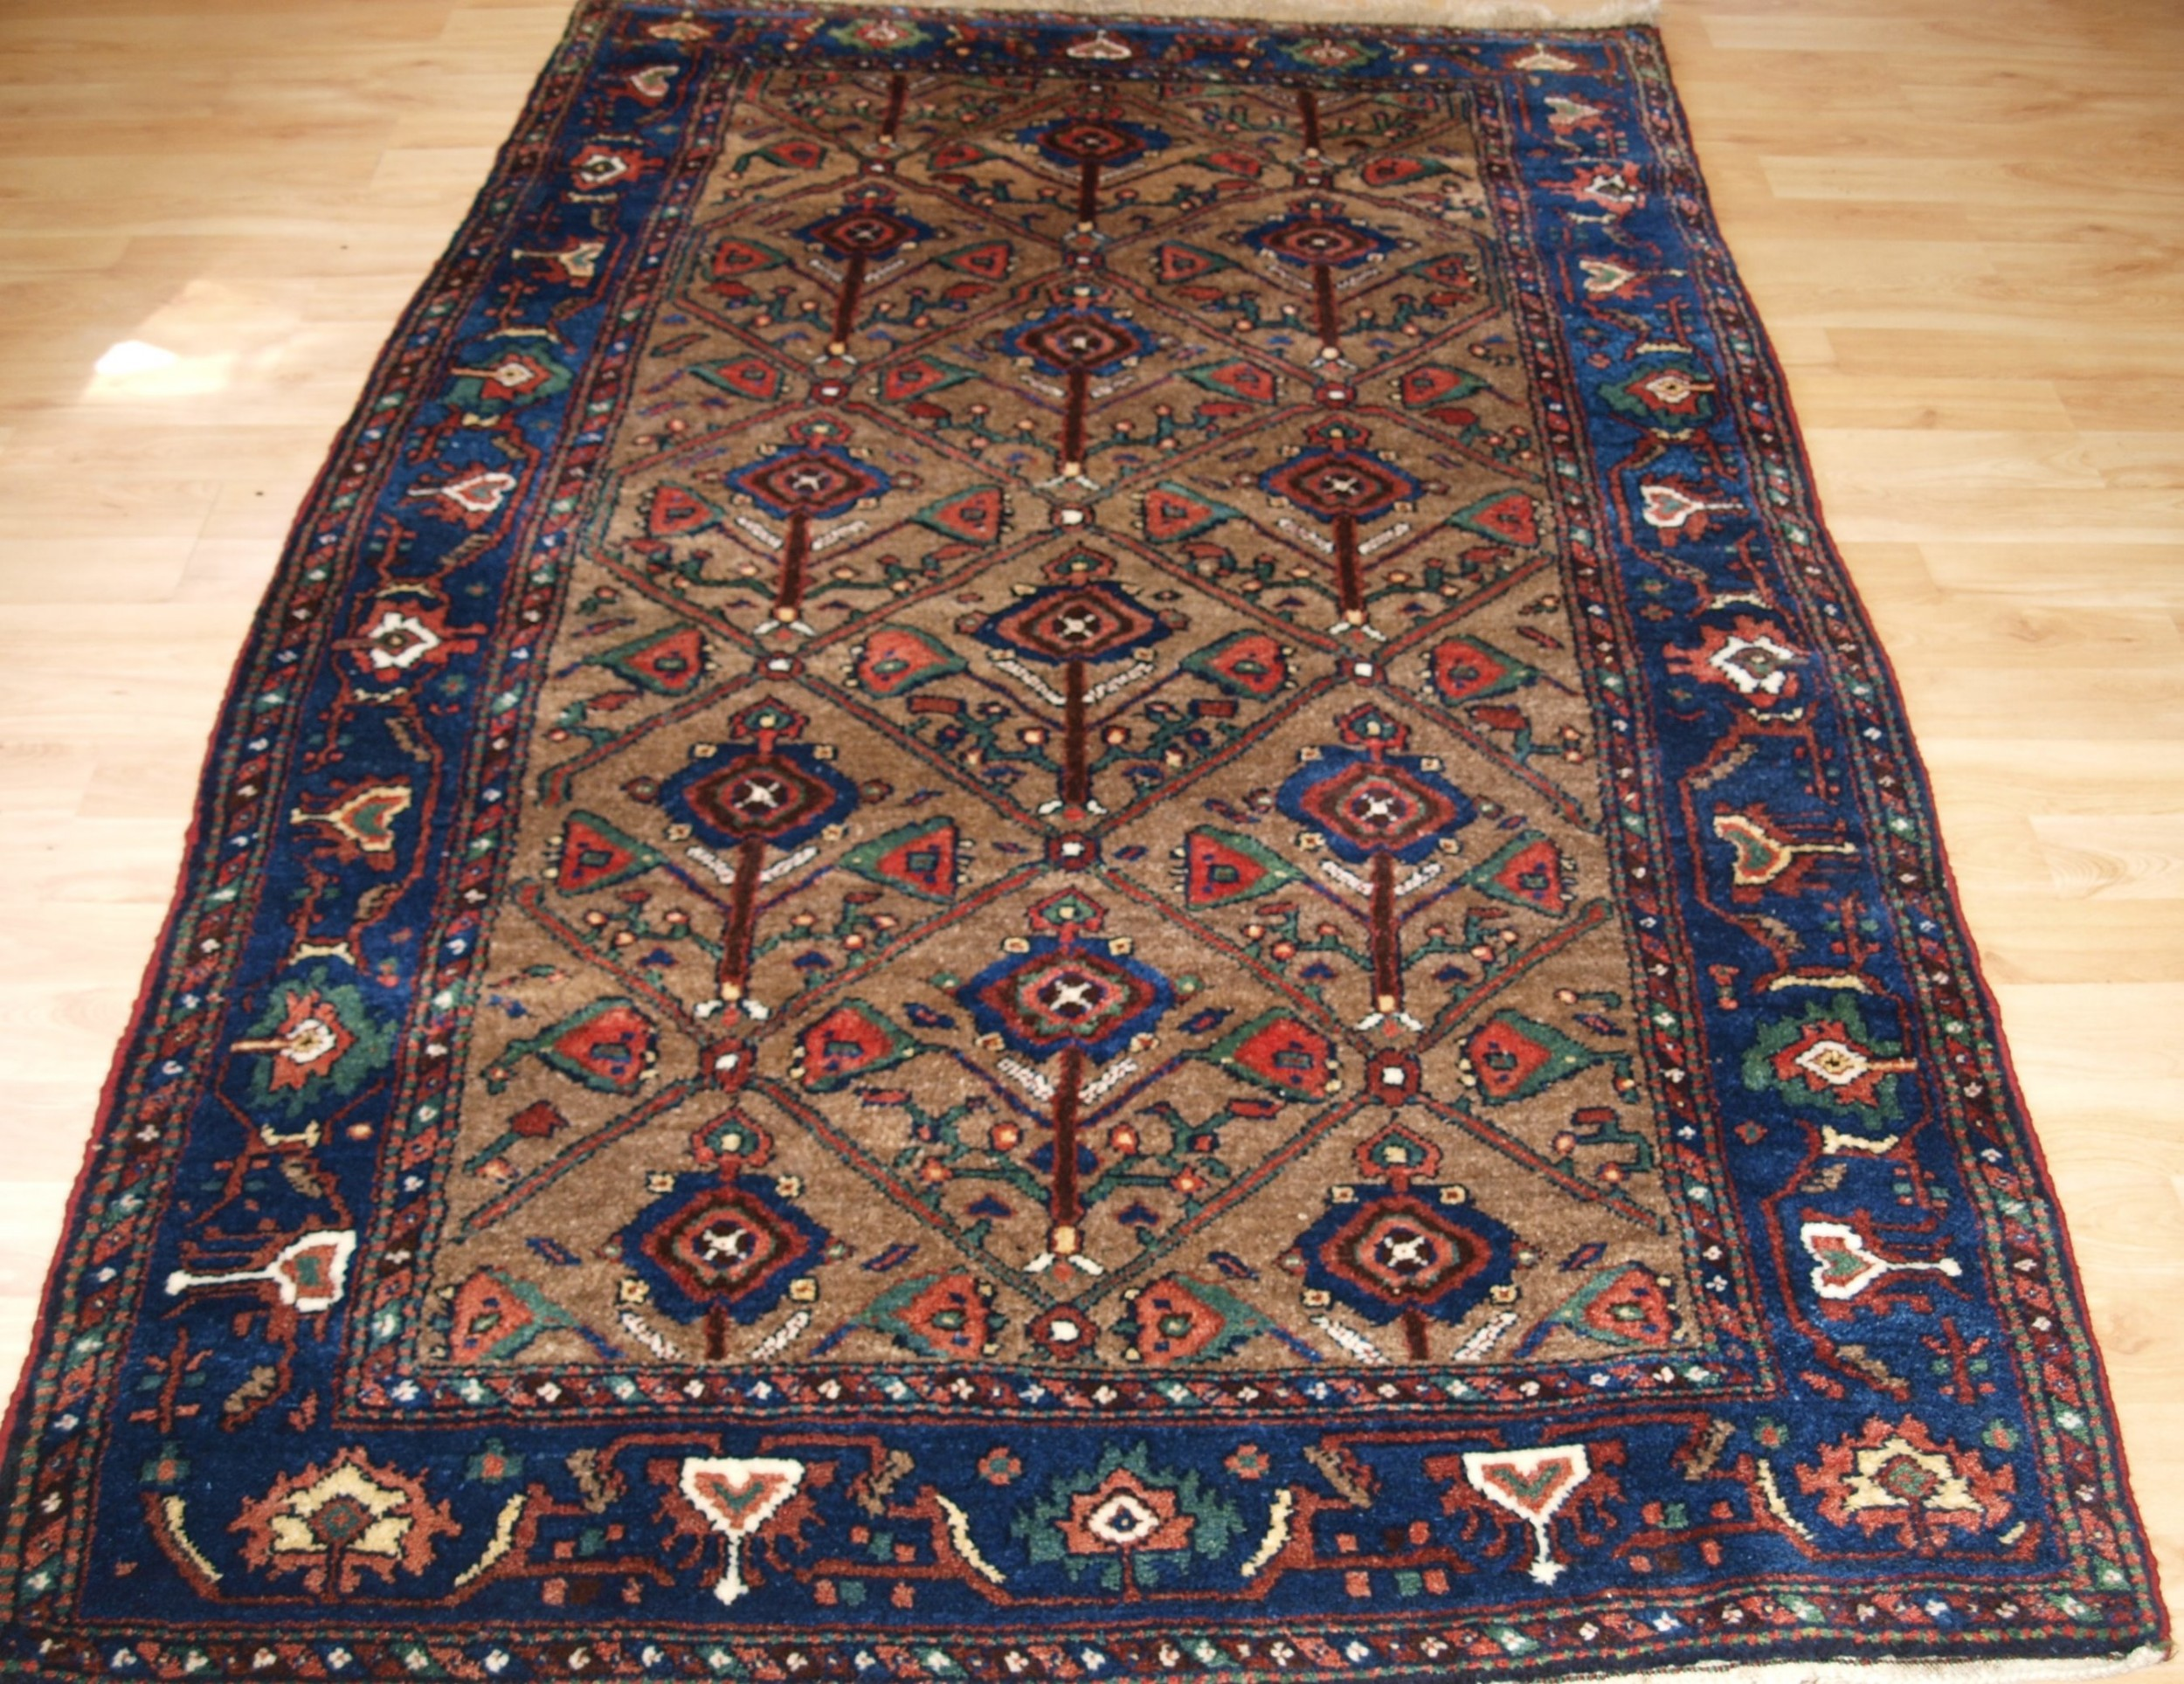 antique kurdish hamadan region village rug circa 190020